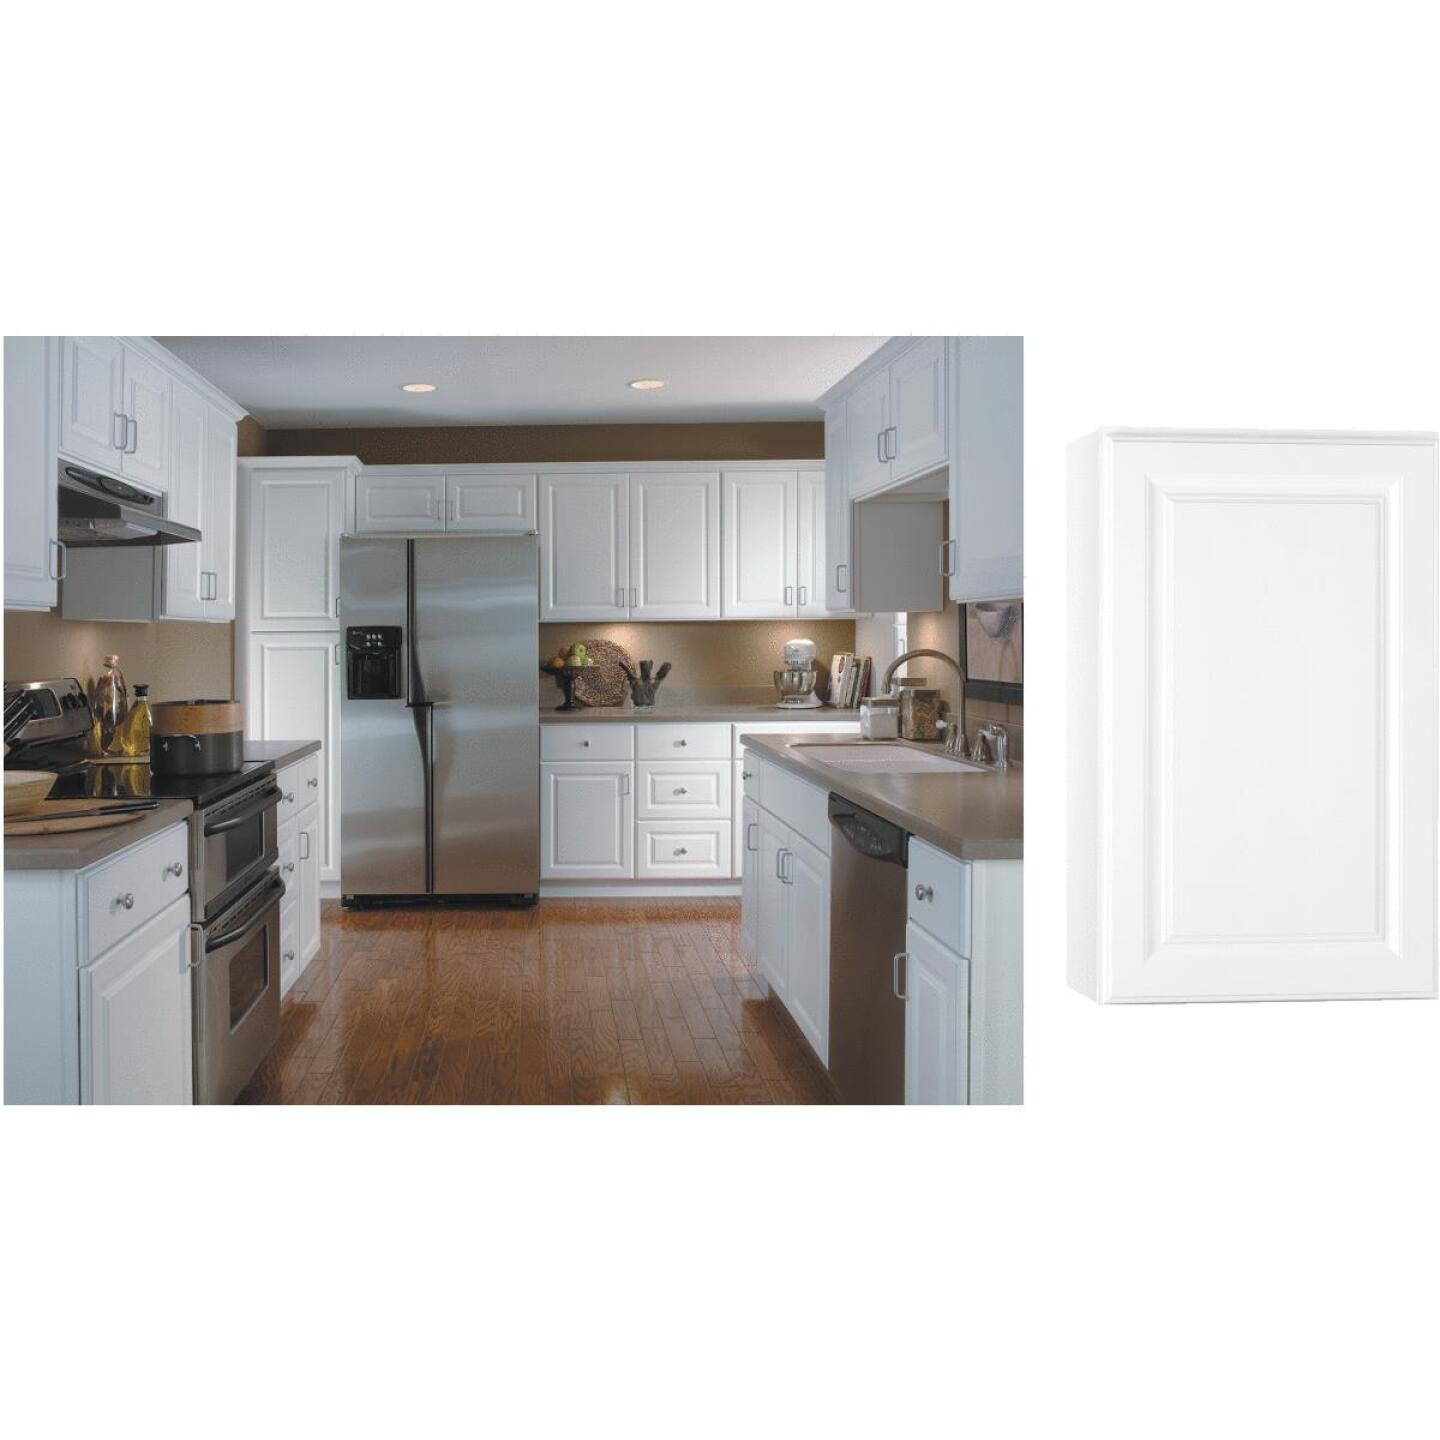 Continental Cabinets Hamilton 18 In. W x 30 In. H x 12 In. D Satin White Maple Wall Kitchen Cabinet Image 1